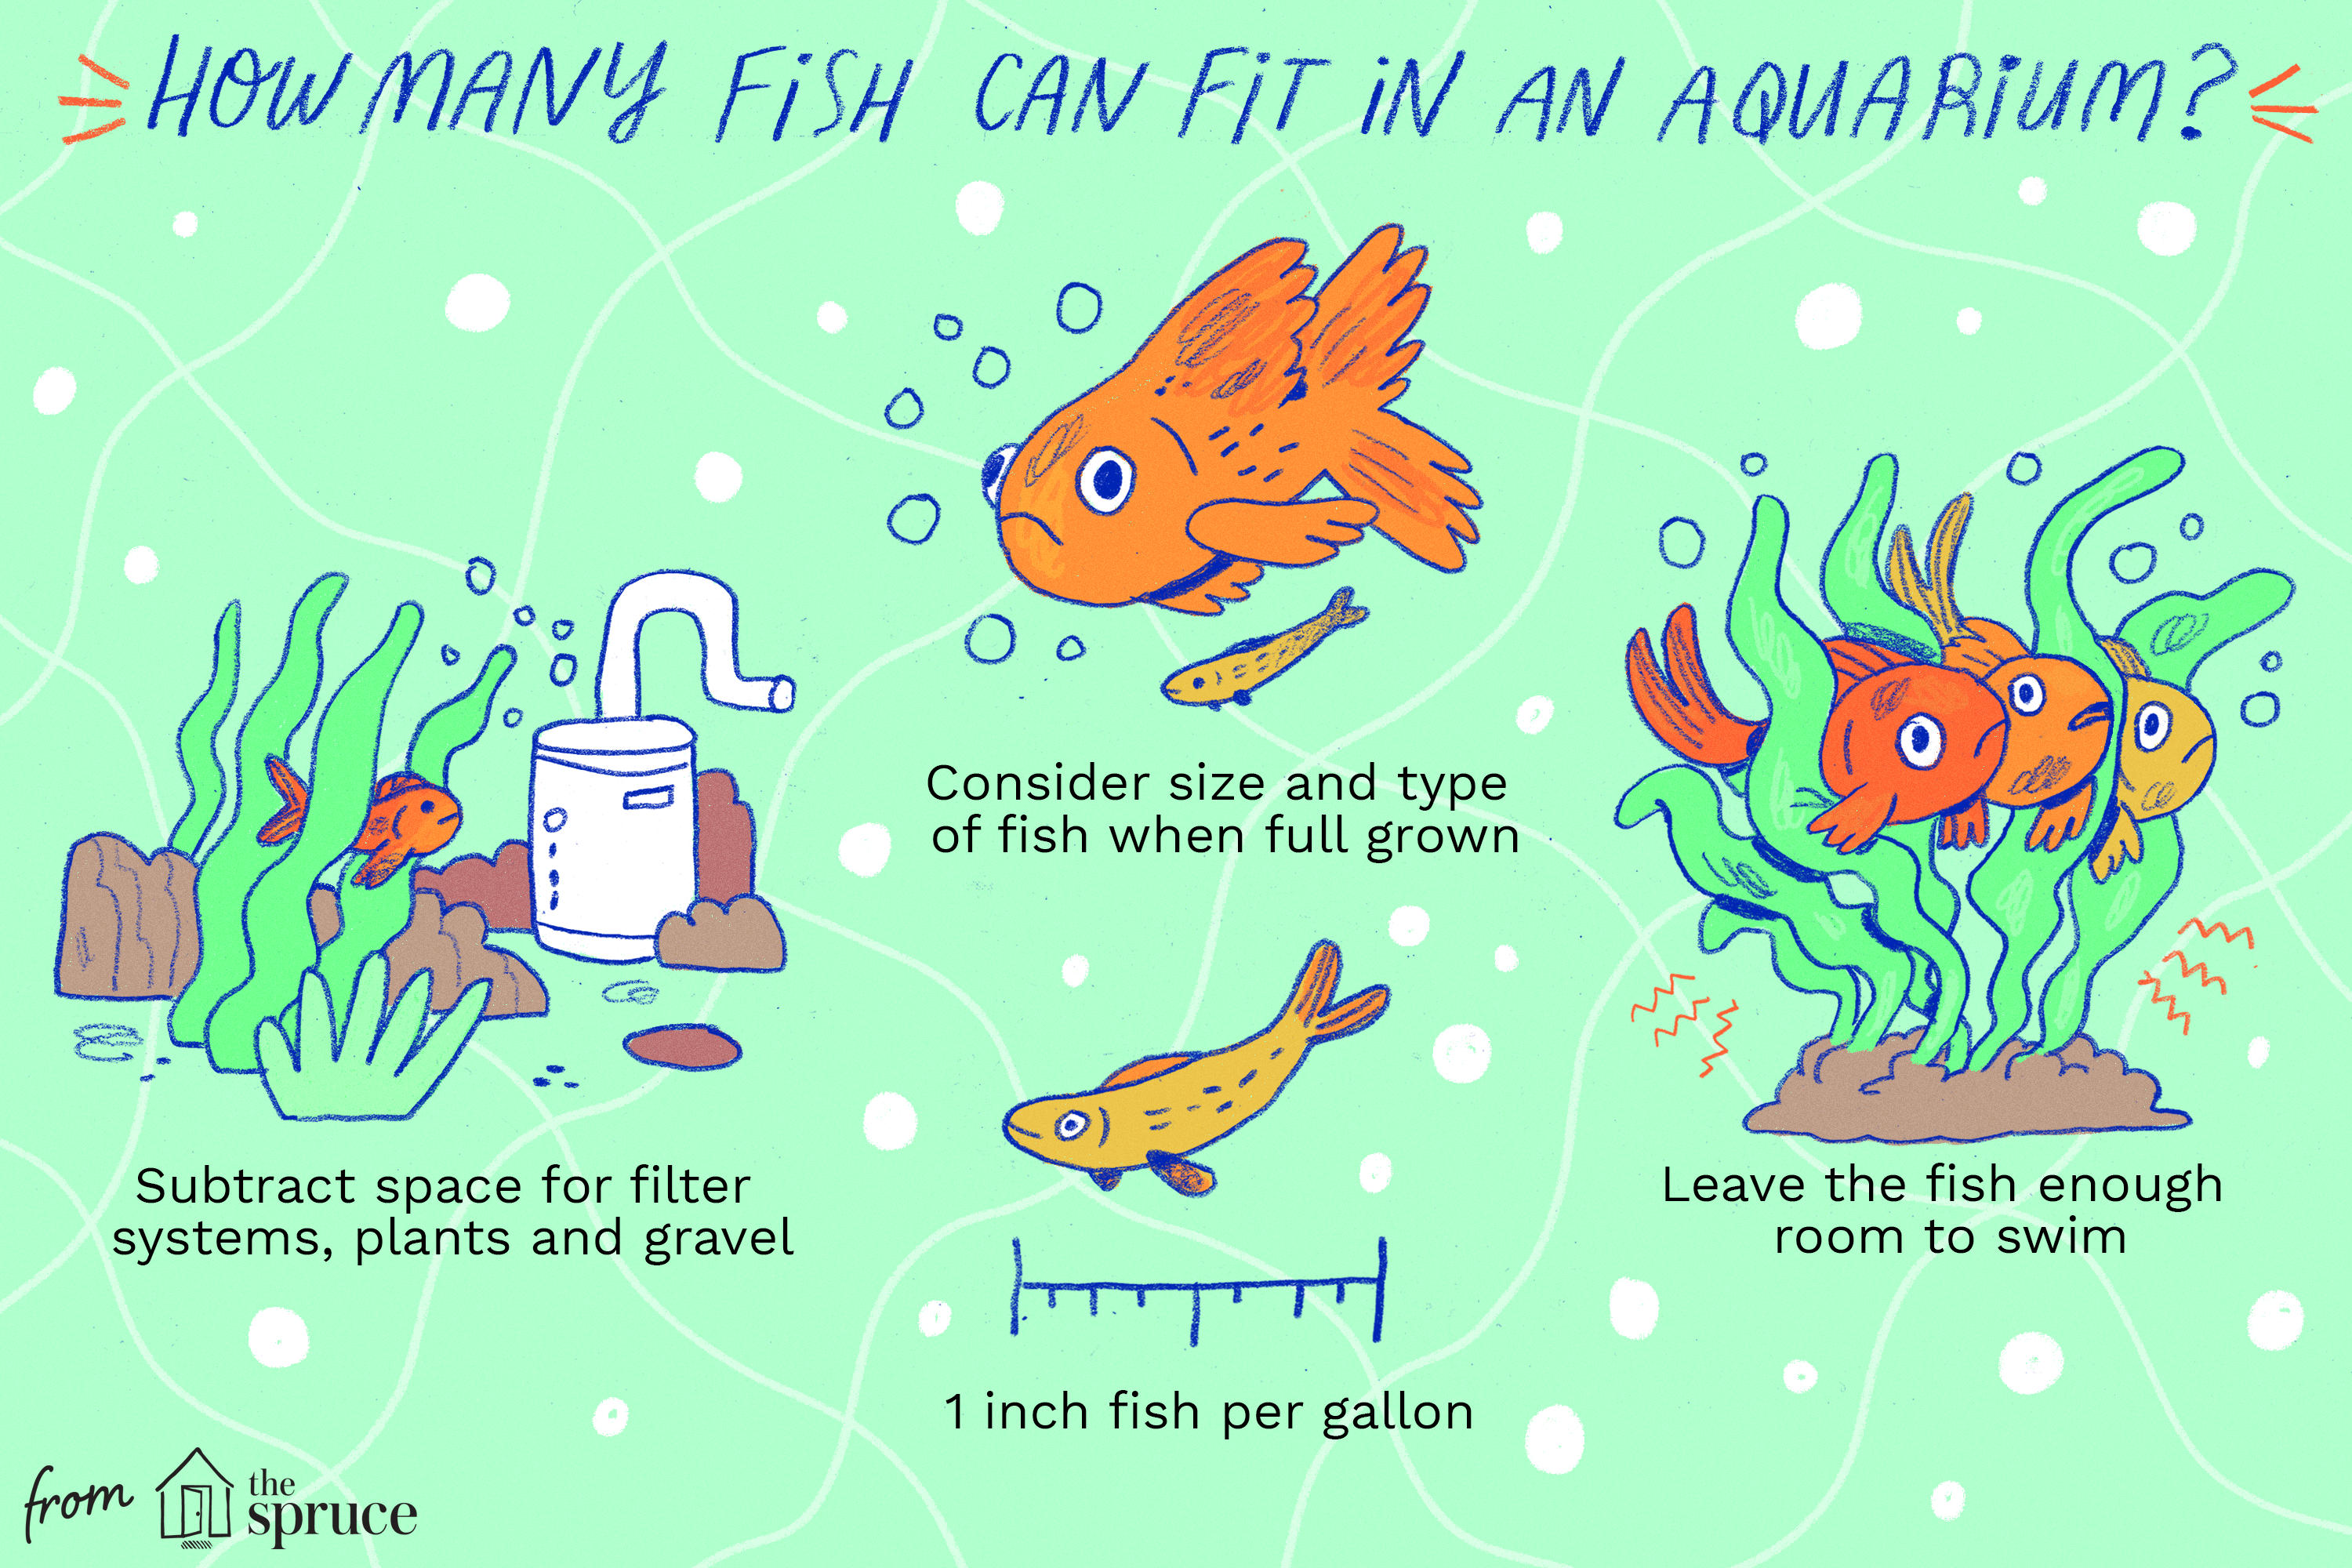 illustration of how many fish can fit in an aquarium?